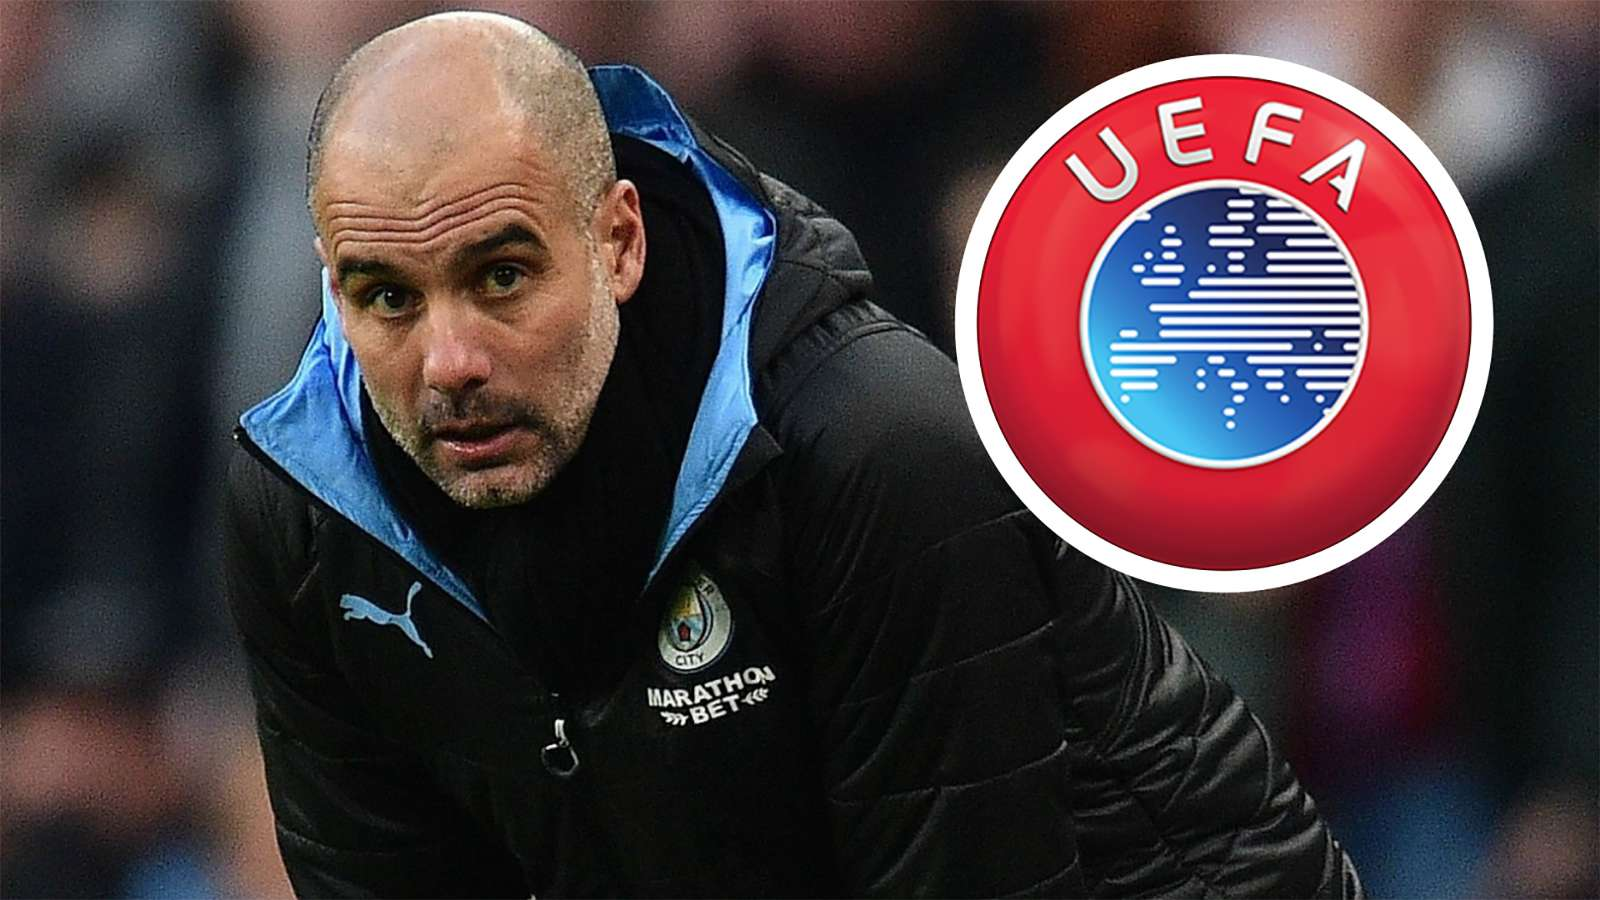 Pep Guardiola Manchester City UEFA 2019-20